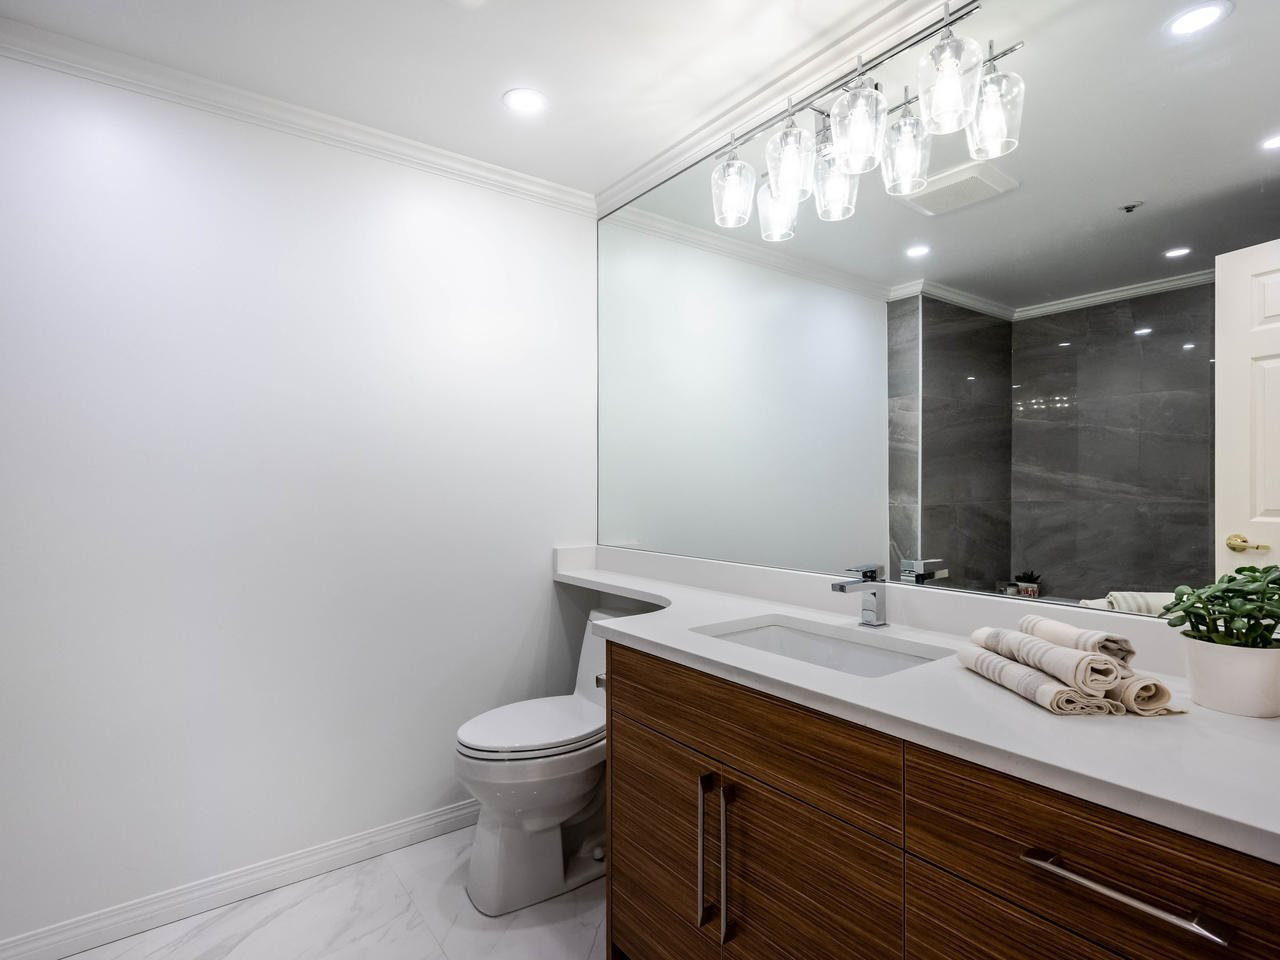 """Photo 26: Photos: 303 2288 W 12TH Avenue in Vancouver: Kitsilano Condo for sale in """"Connaught Point"""" (Vancouver West)  : MLS®# R2494985"""